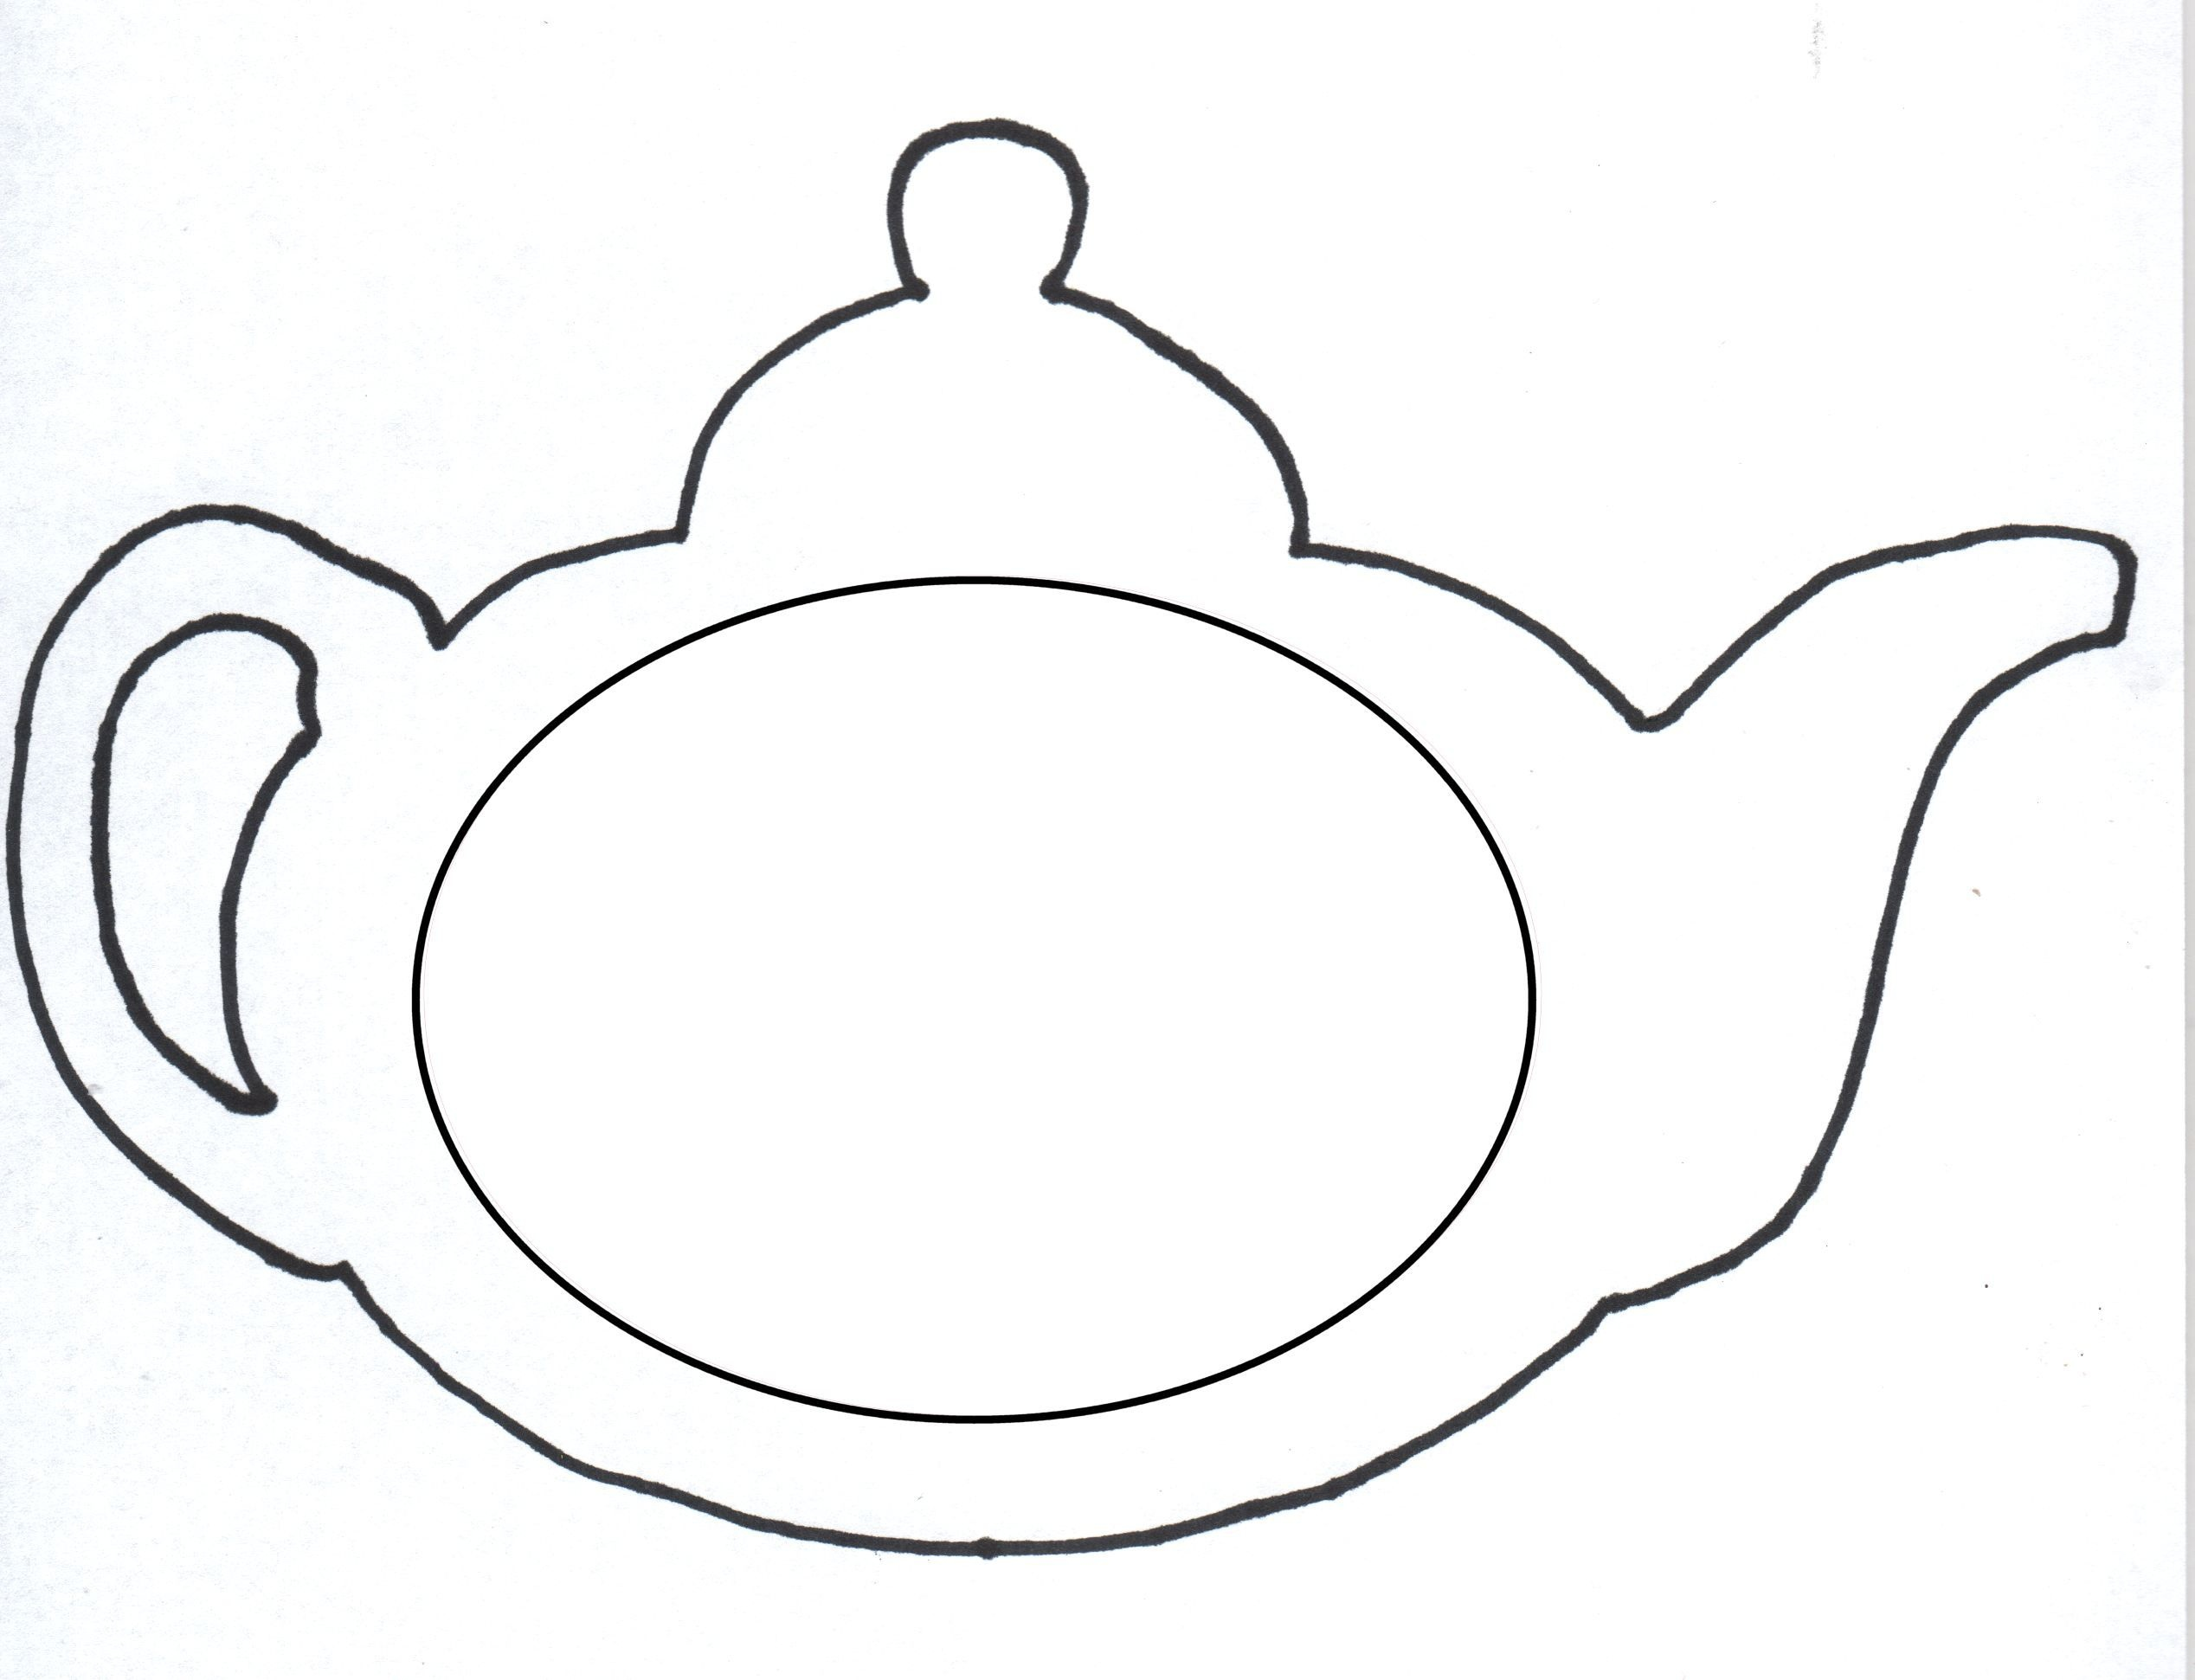 Diy Mother's Day Gift: Teapot Card & Magnet   Lifetime Moms - Free Printable Teacup Template